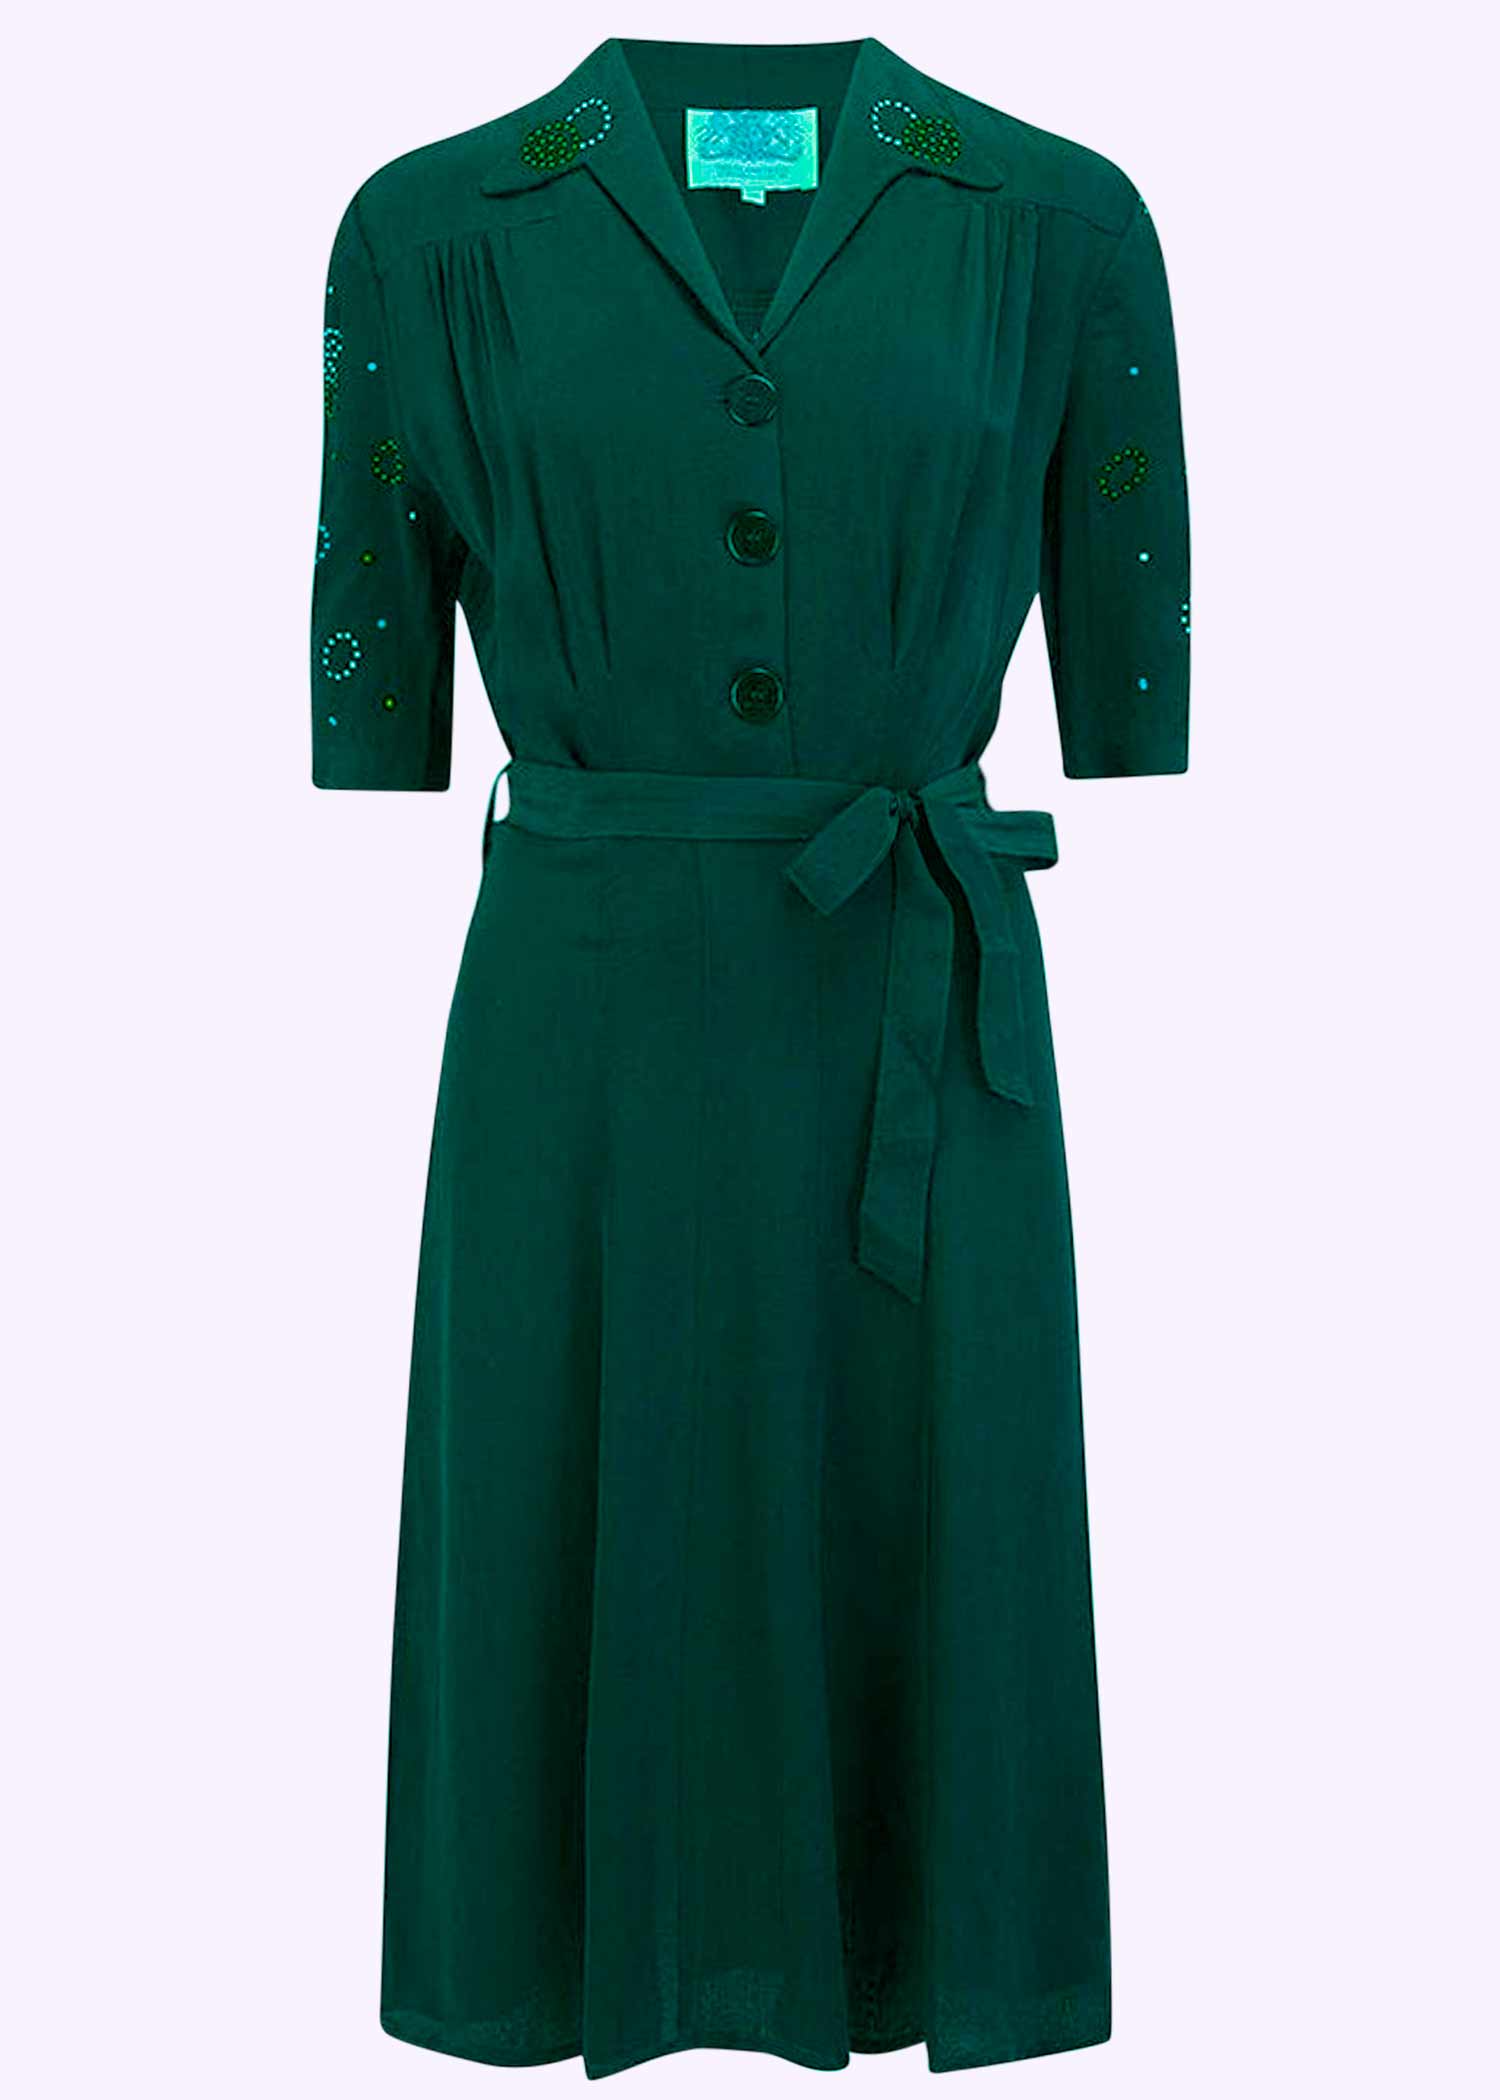 Green dress in 40s style from Bloomsbury